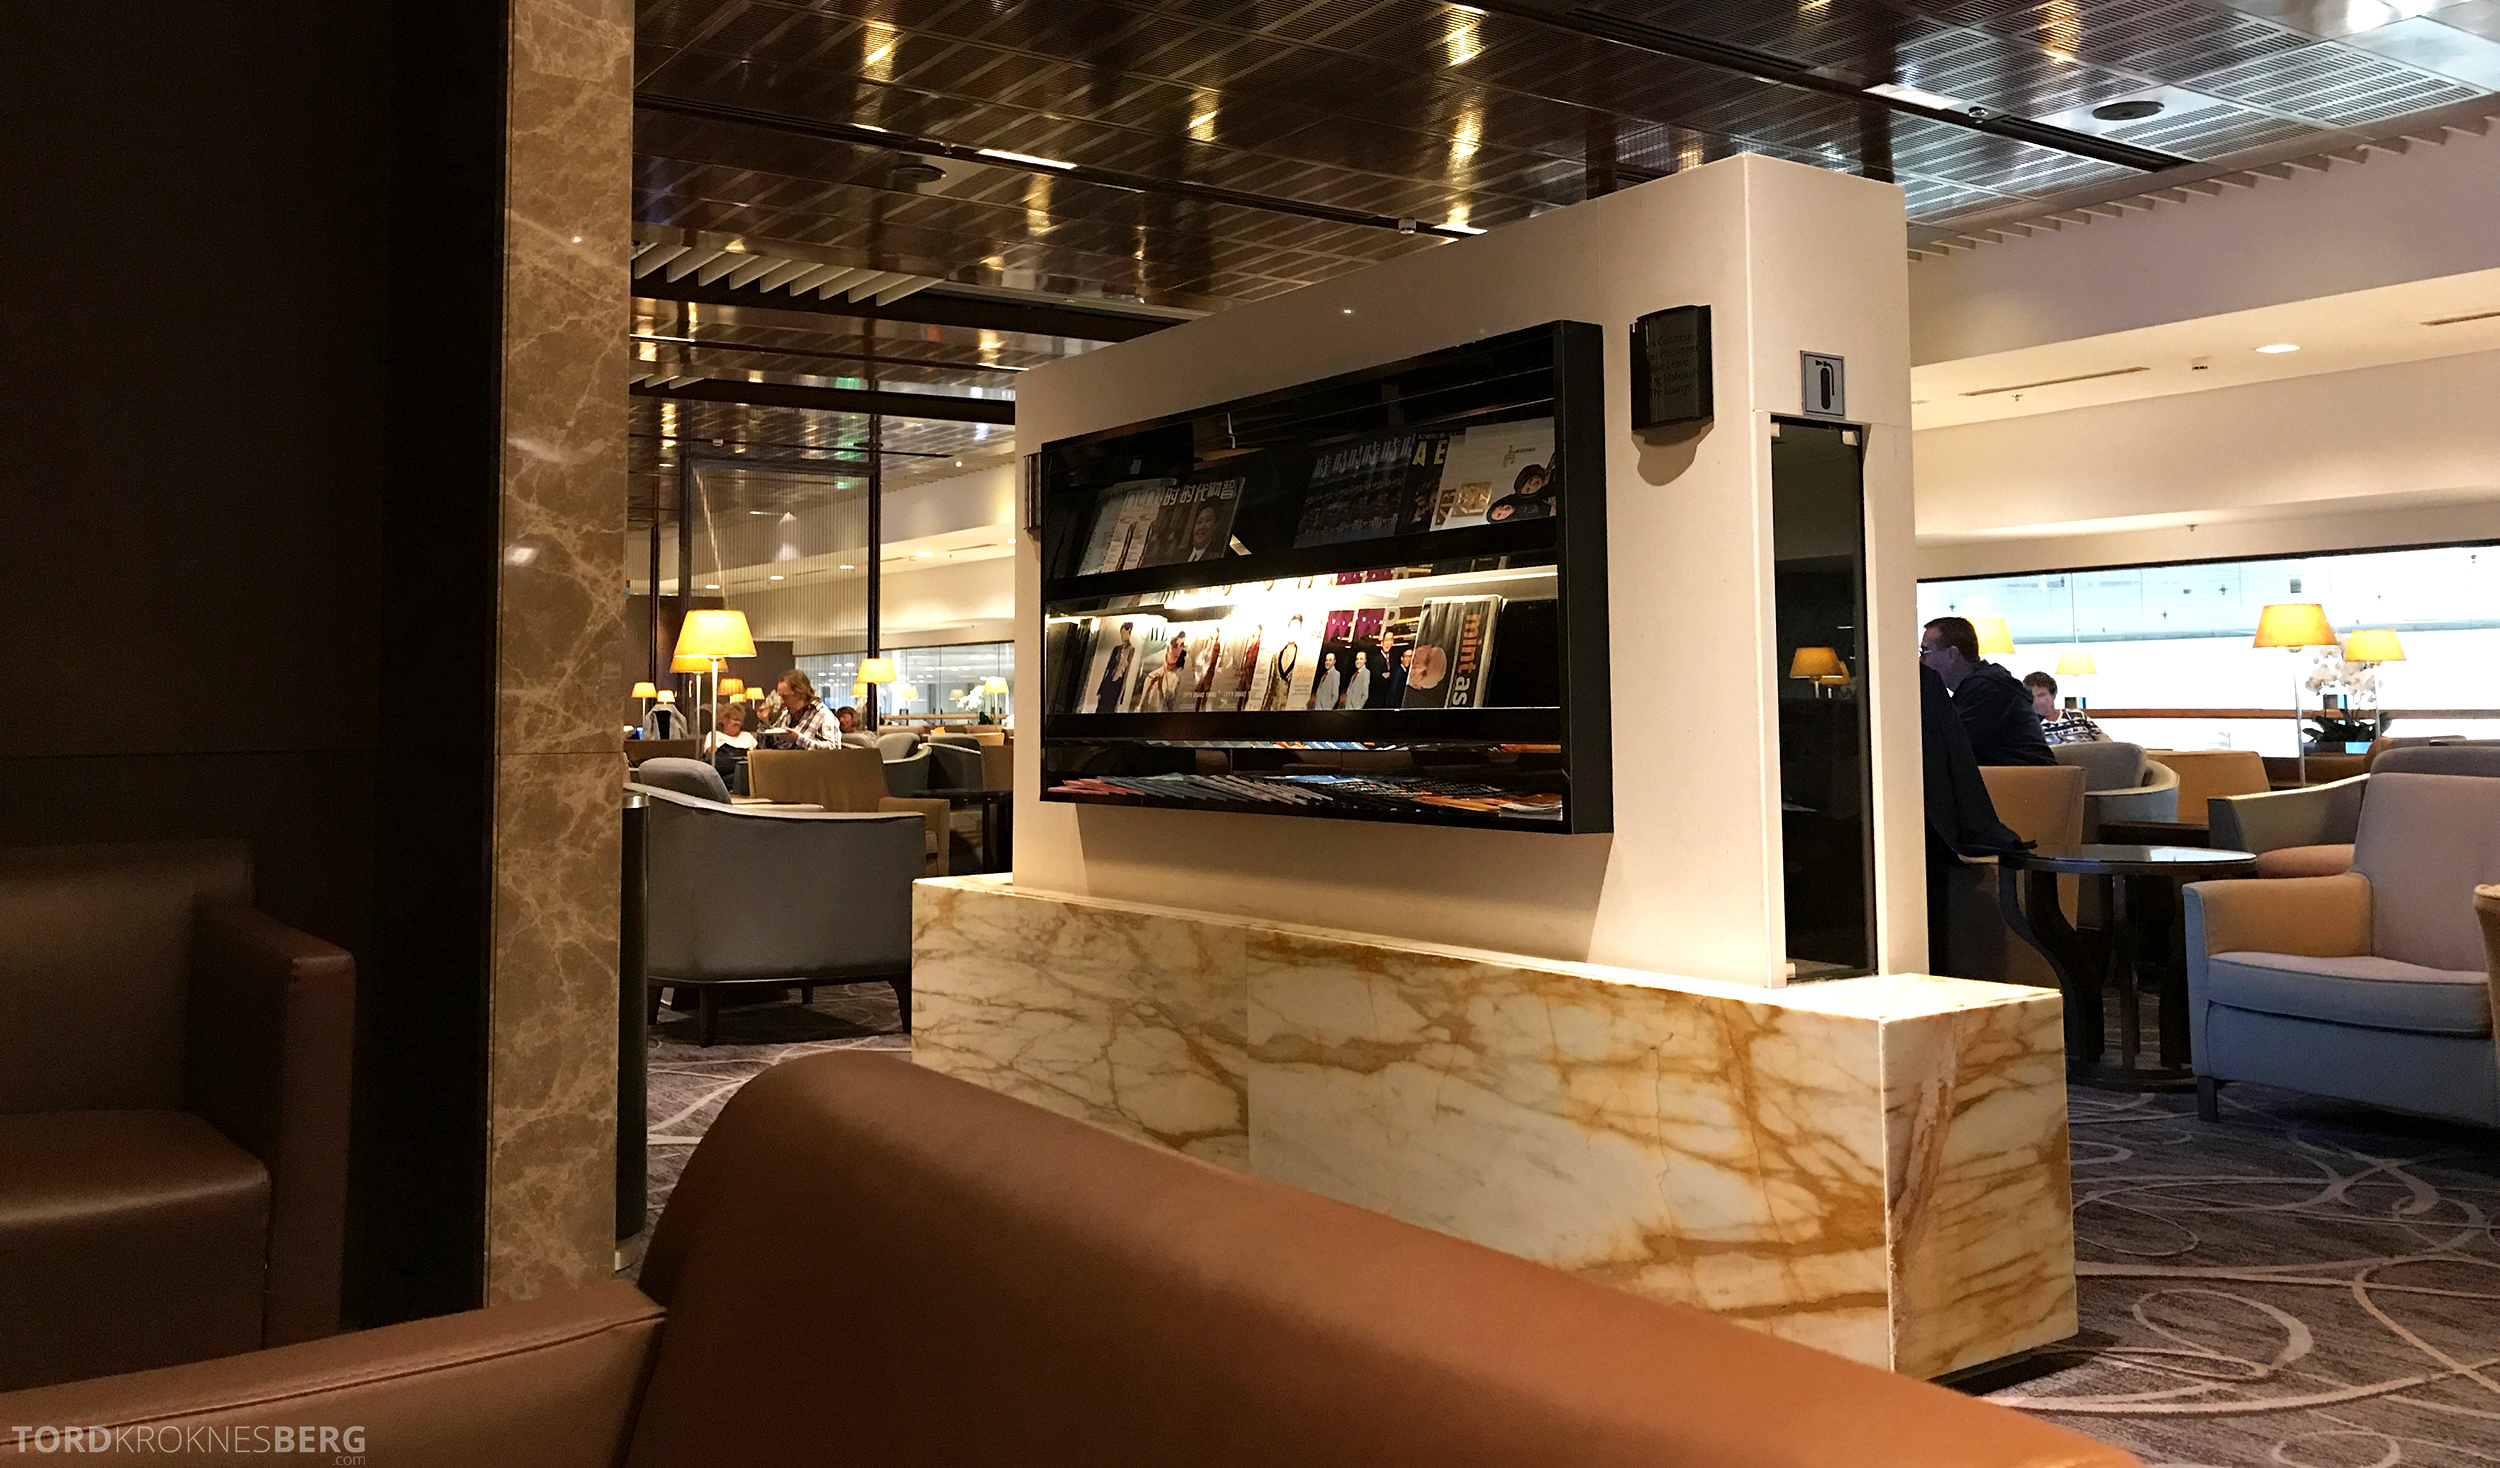 Singapore Airlines SilverKris Lounge interiør